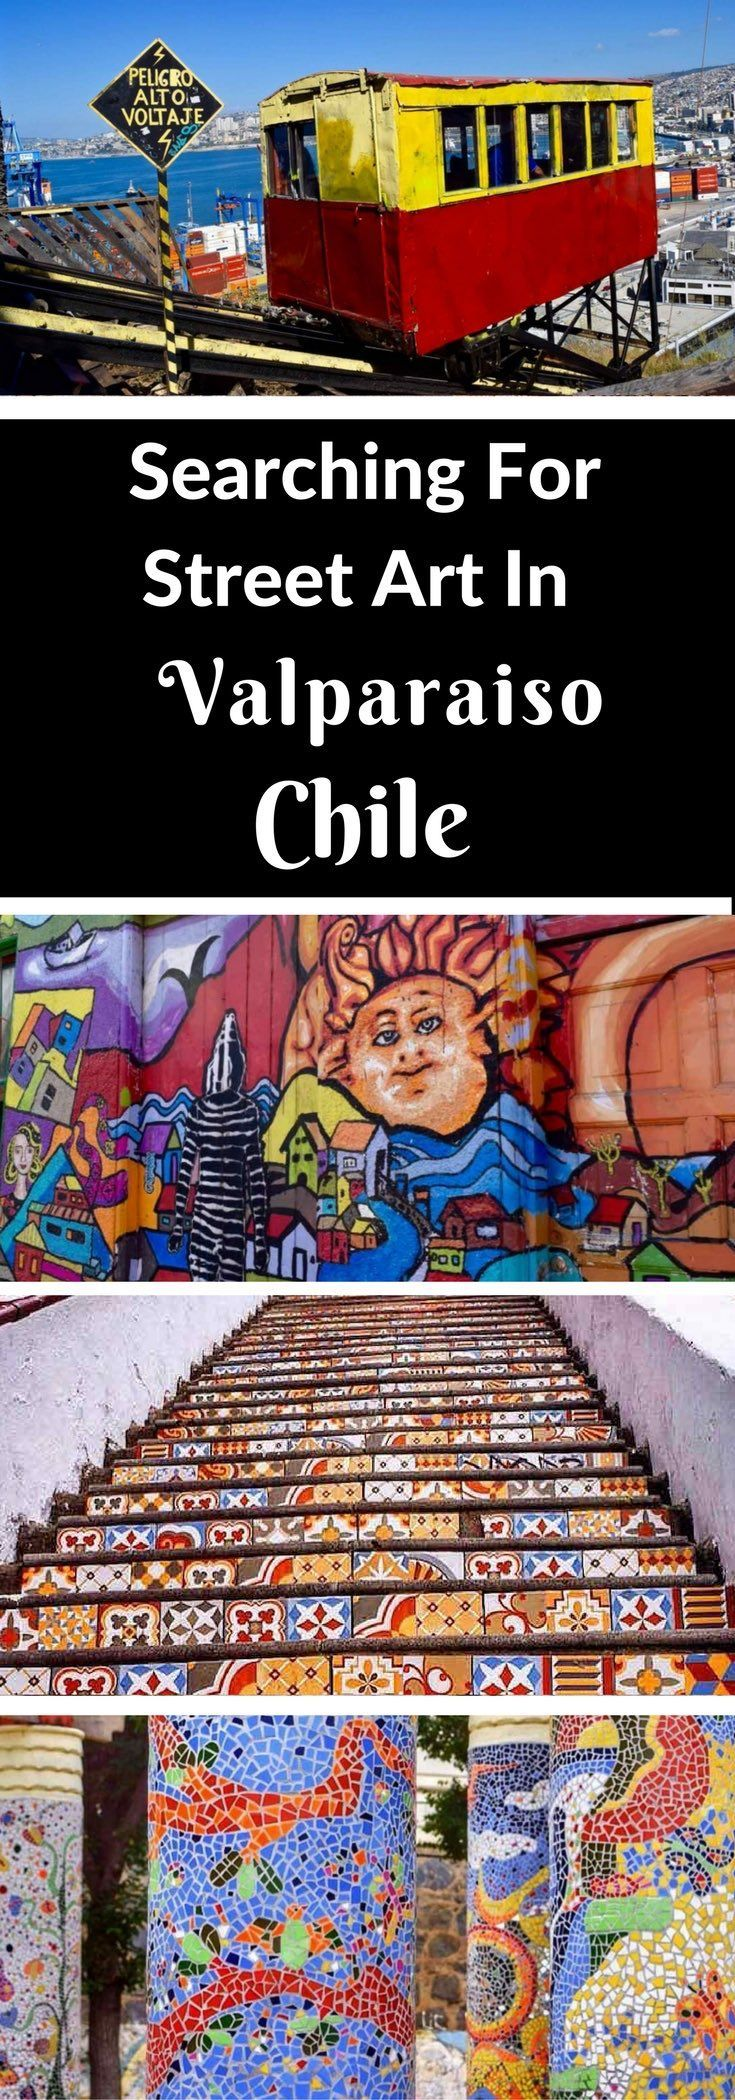 Searching For Street Art In Valparaiso, Chile